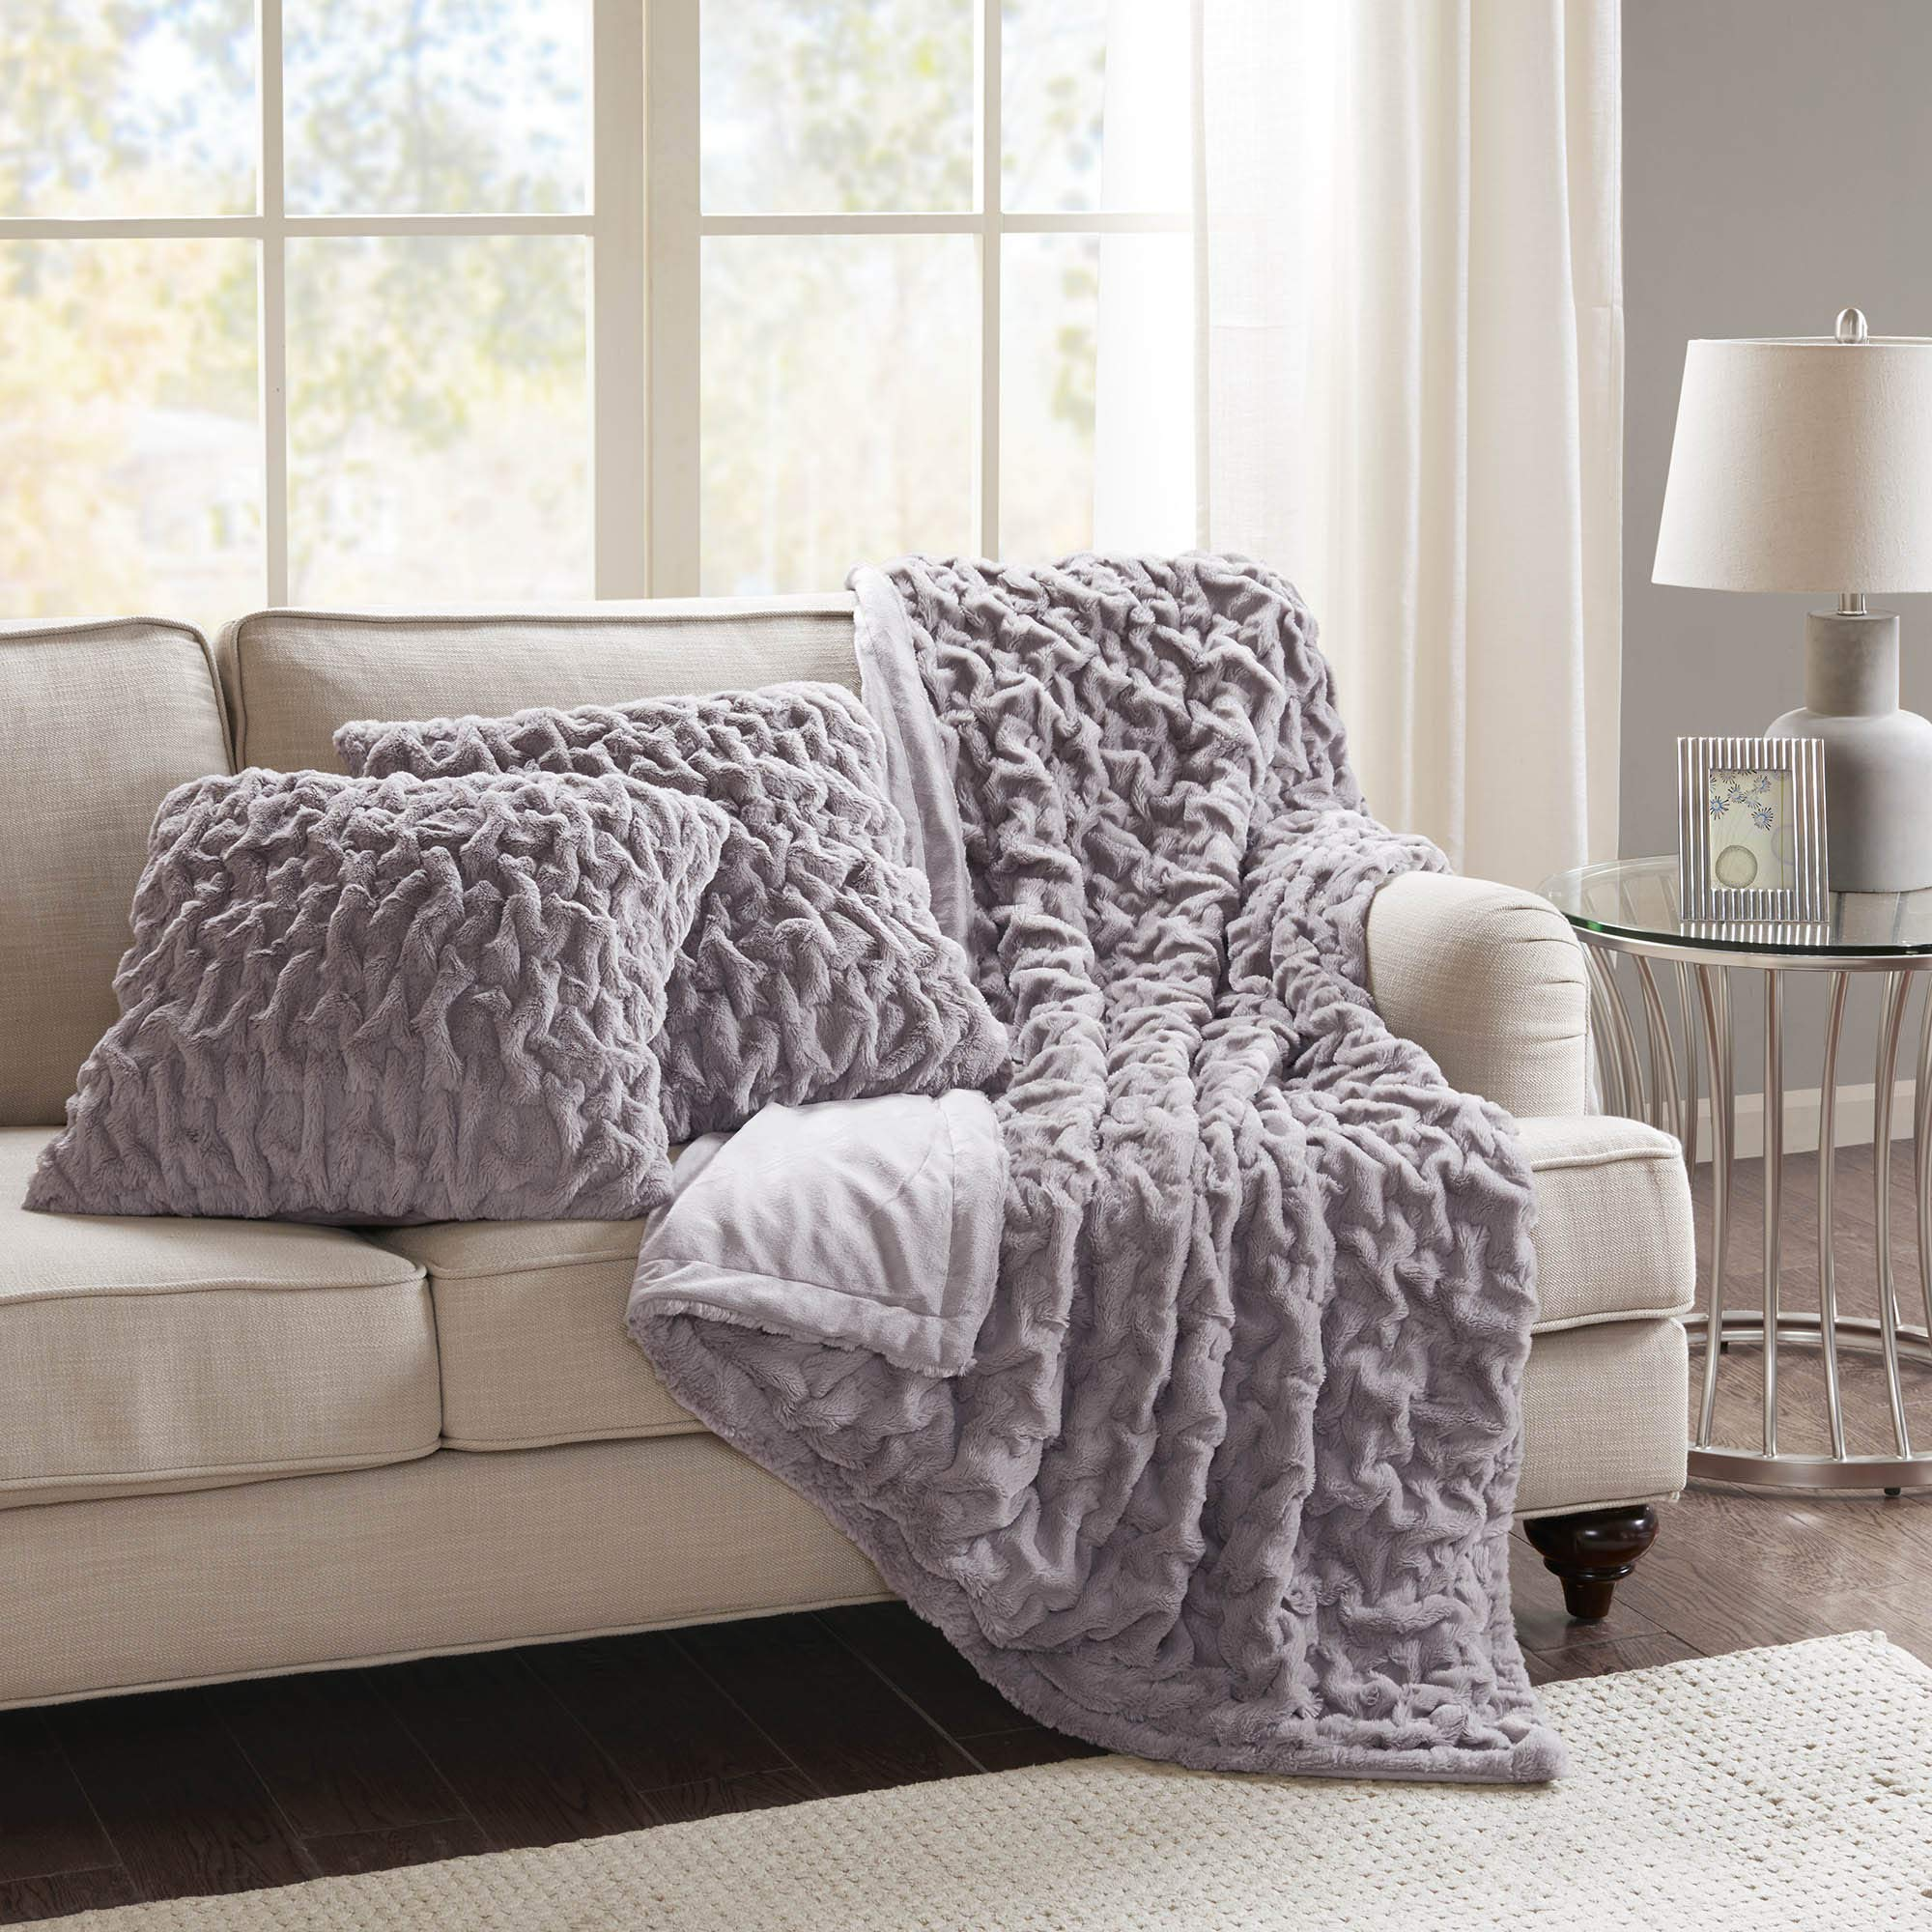 Comfort Spaces Faux Fur Throw Blanket Set – Fluffy Plush Blankets for Couch and Bed – Lavender Size 50'' x 60'' with 2 Square Pillow Covers 20'' x 20''